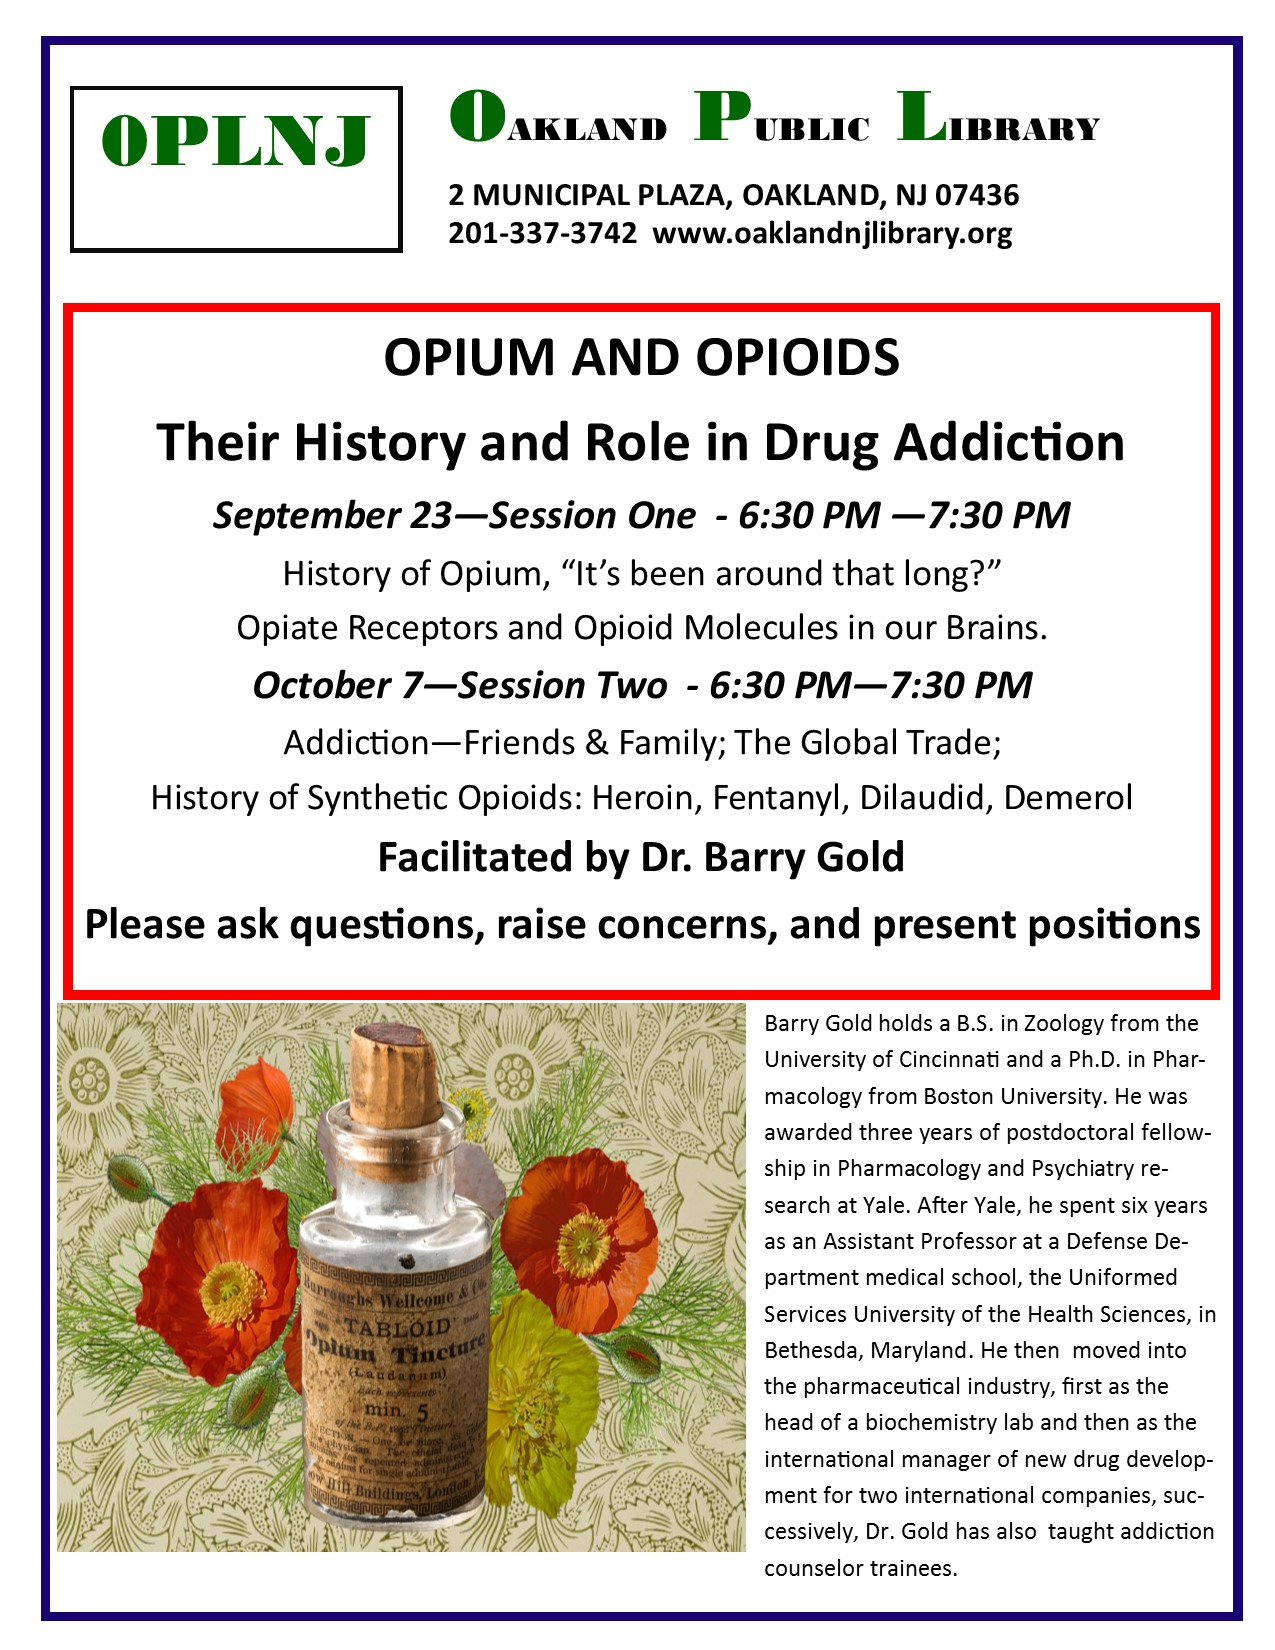 Opium and Opioids, Their History and Role in Drug Addiction. Session One